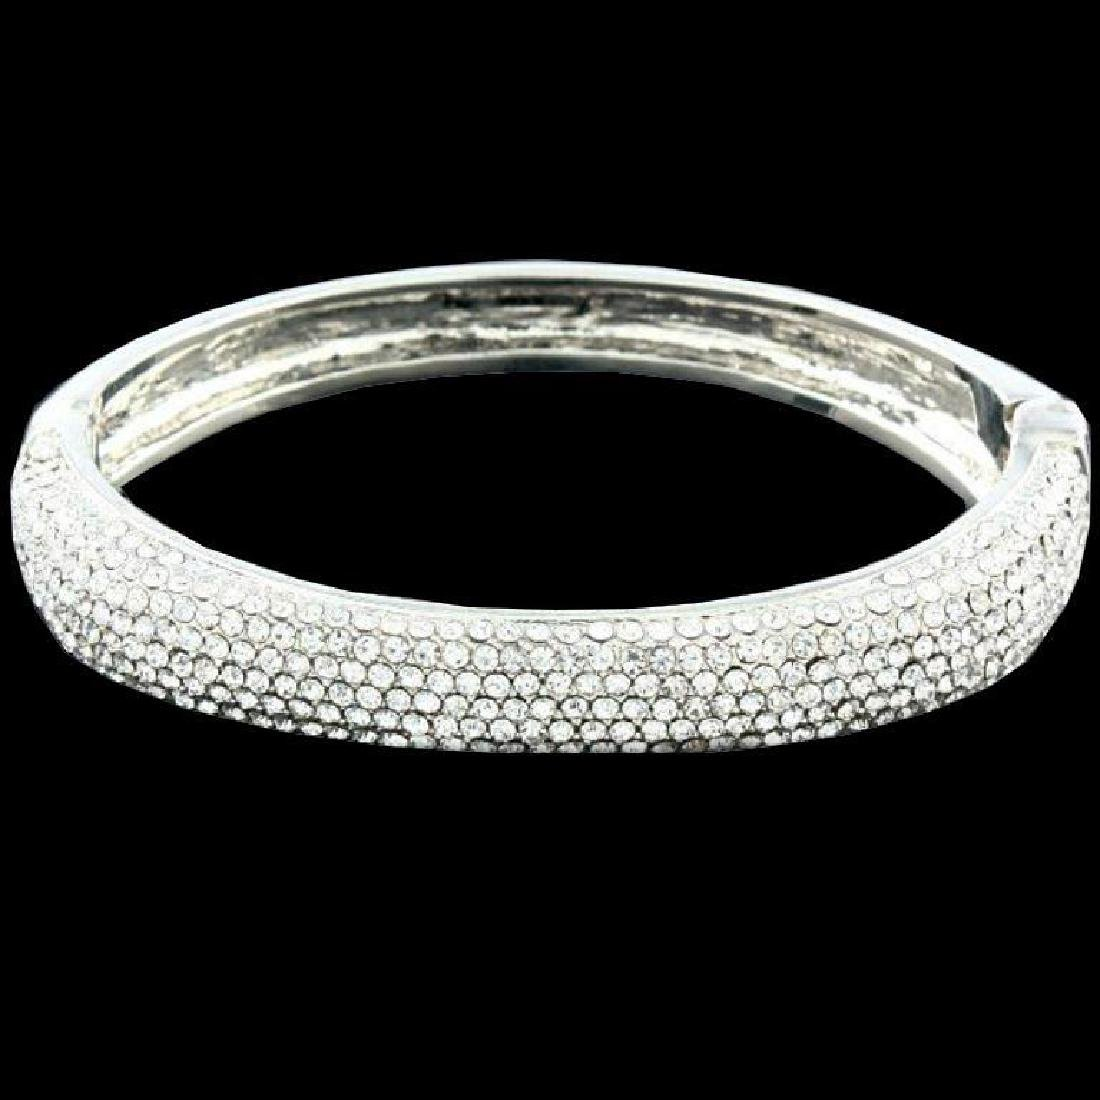 Sparkling Swarovski Crystal Bangle Bracelet